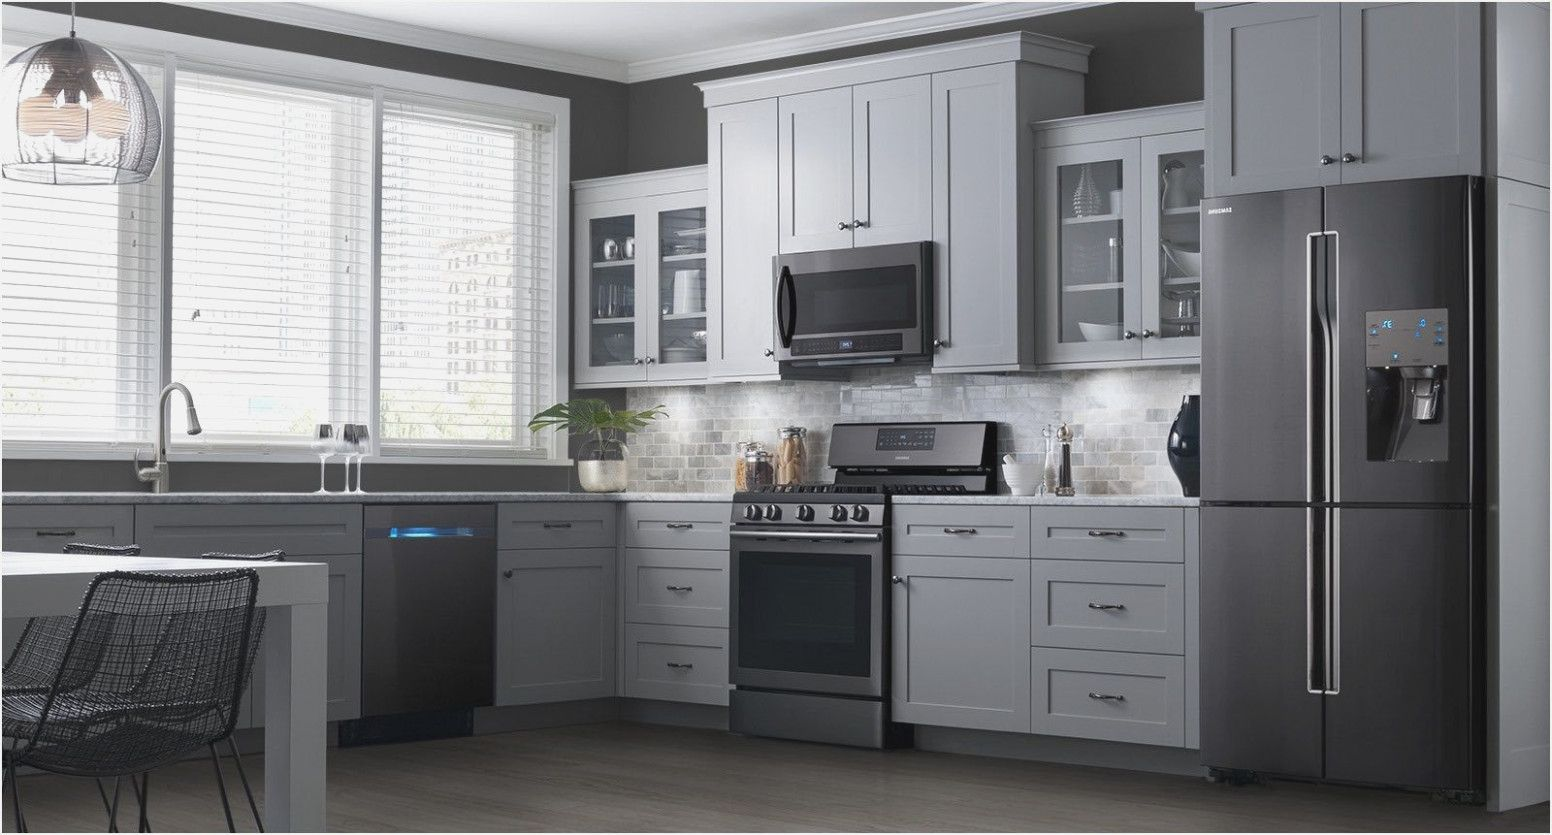 Kitchenaid Samsung Black Stainless Steel Appliances Reviews From